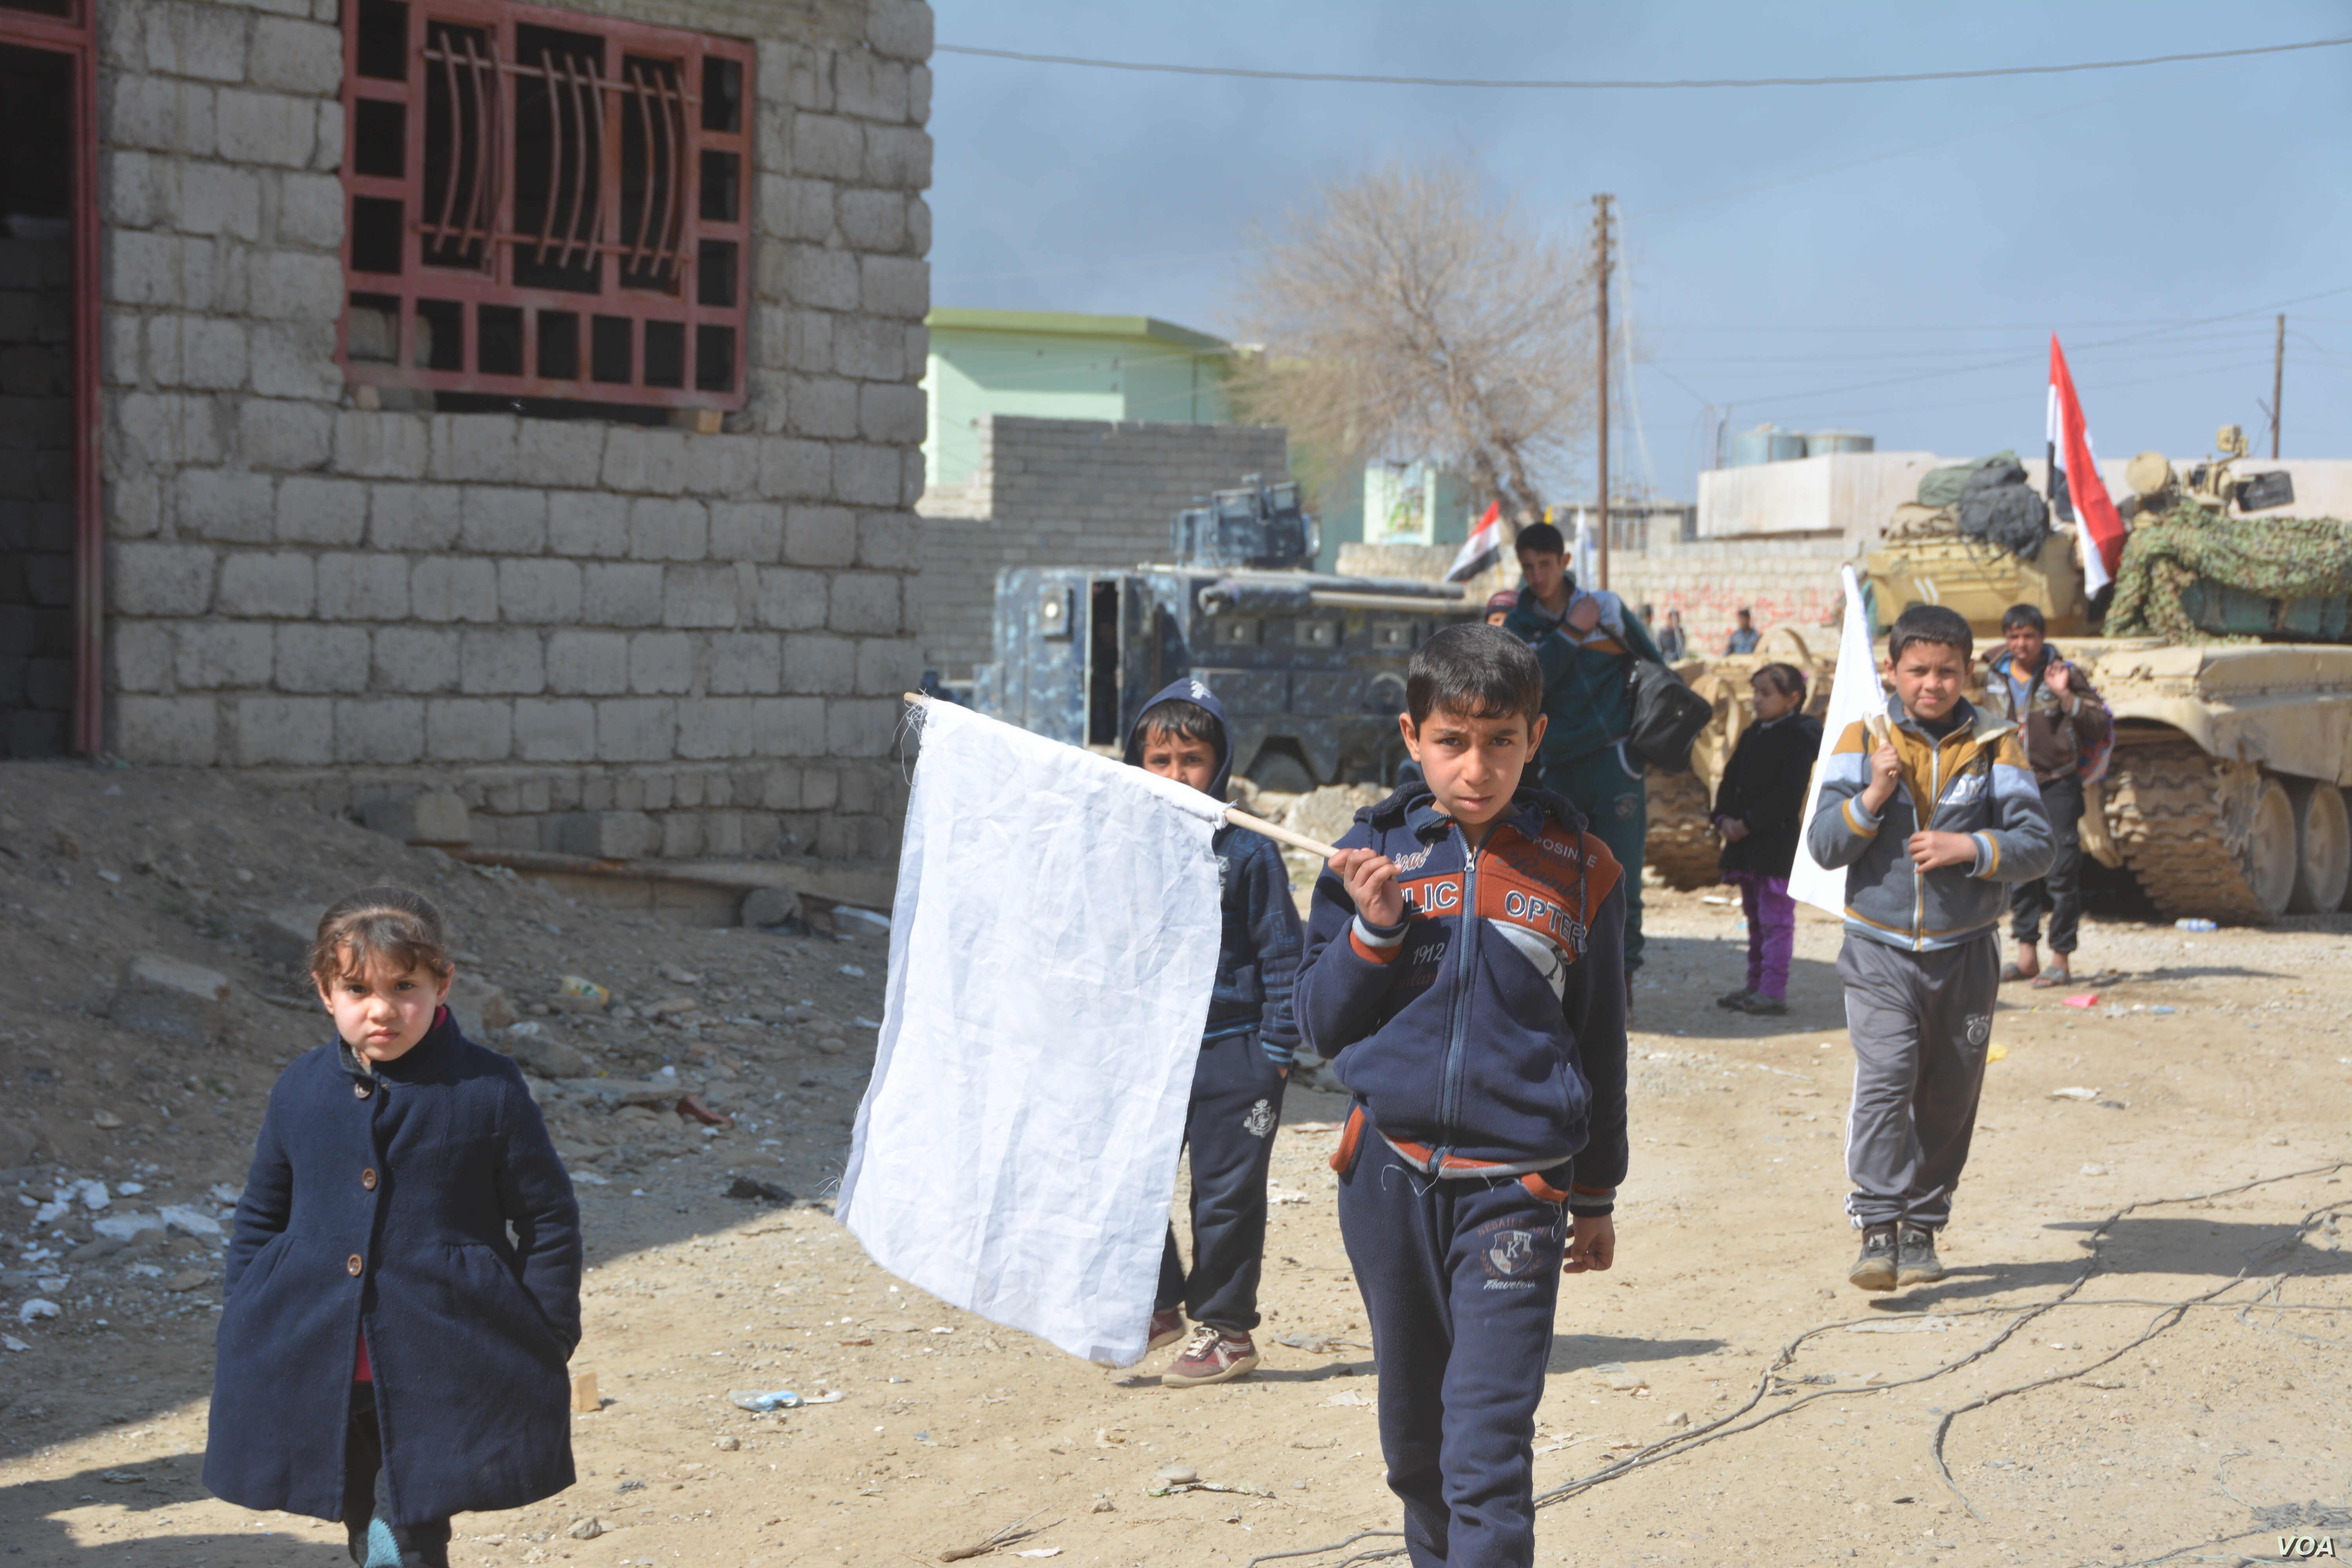 Children carry white flags as they flee IS and disputed neighborhoods, hoping to encourage all sides to hold their fire in the al-Josaq suburb of Mosul, Iraq, Feb. 26, 2017. (Mahmood Alsalih/VOA)